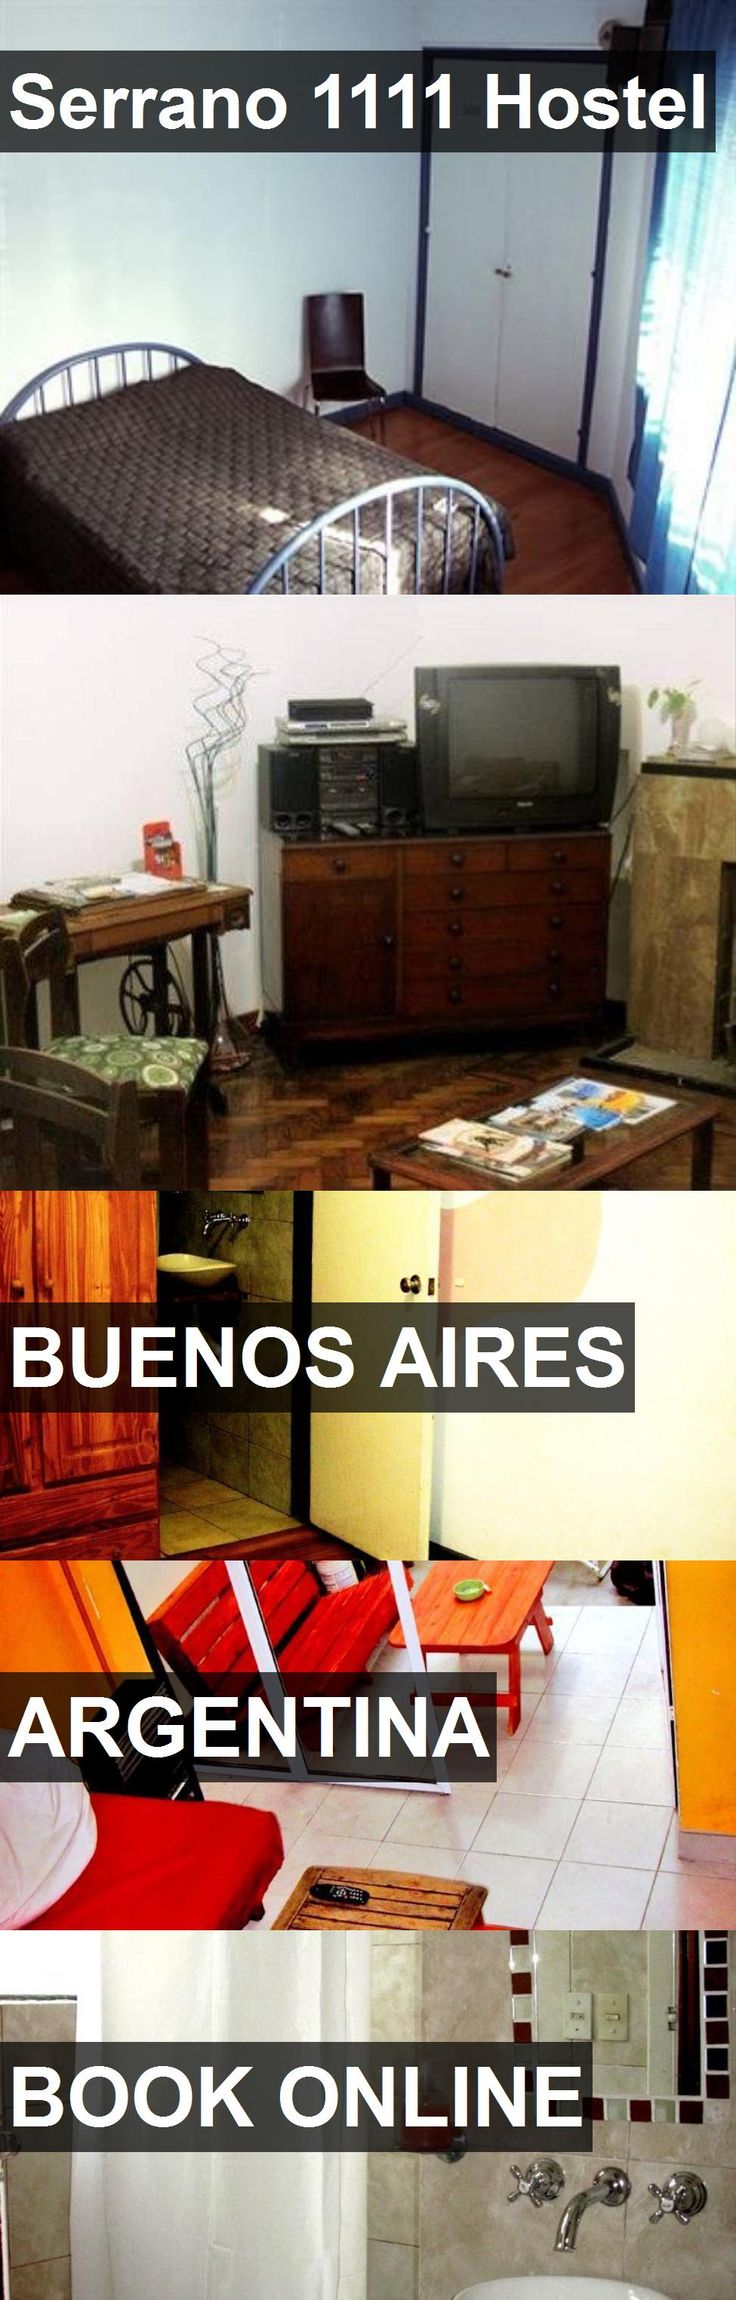 Serrano 1111 Hostel in Buenos Aires, Argentina. For more information, photos, reviews and best prices please follow the link. #Argentina #BuenosAires #travel #vacation #hostel